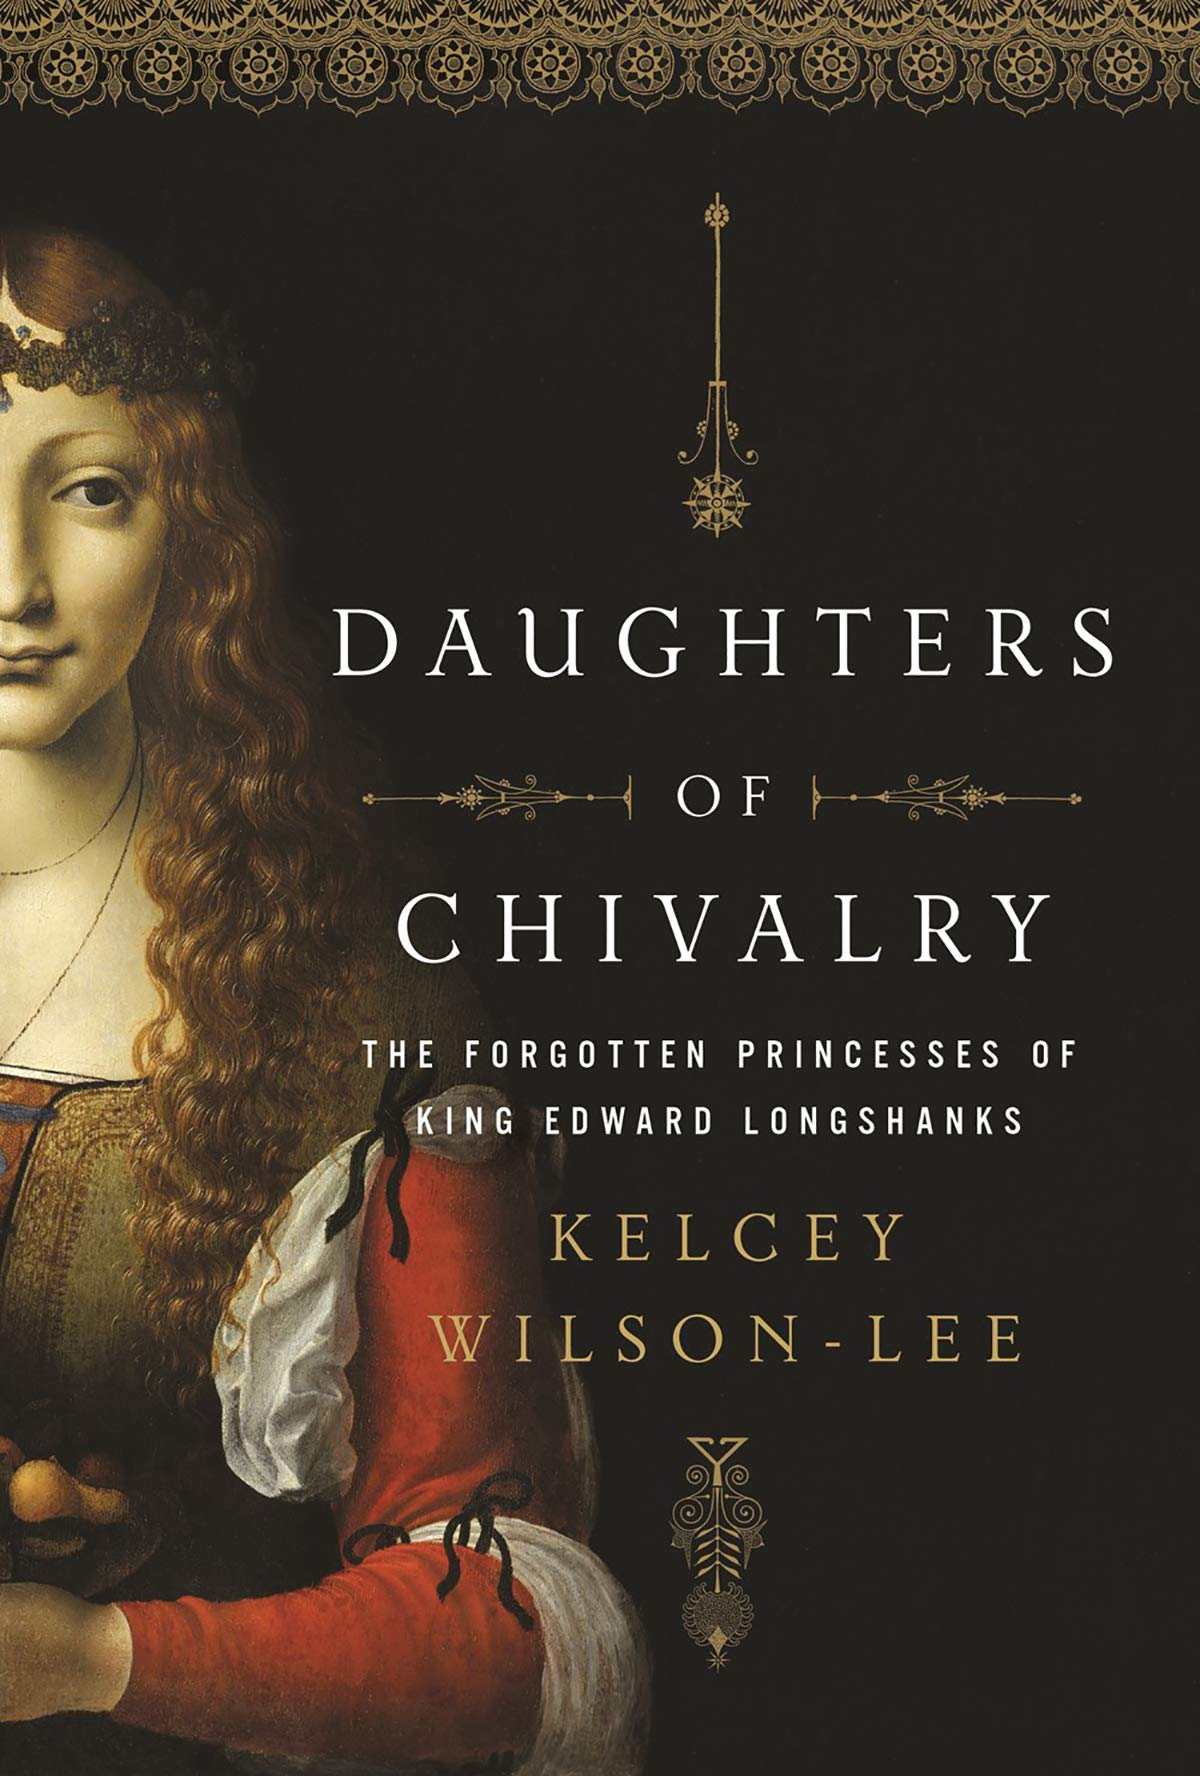 Daughters of Chivalry: The Forgotten Children of King Edward Longshanks by Pegasus Books